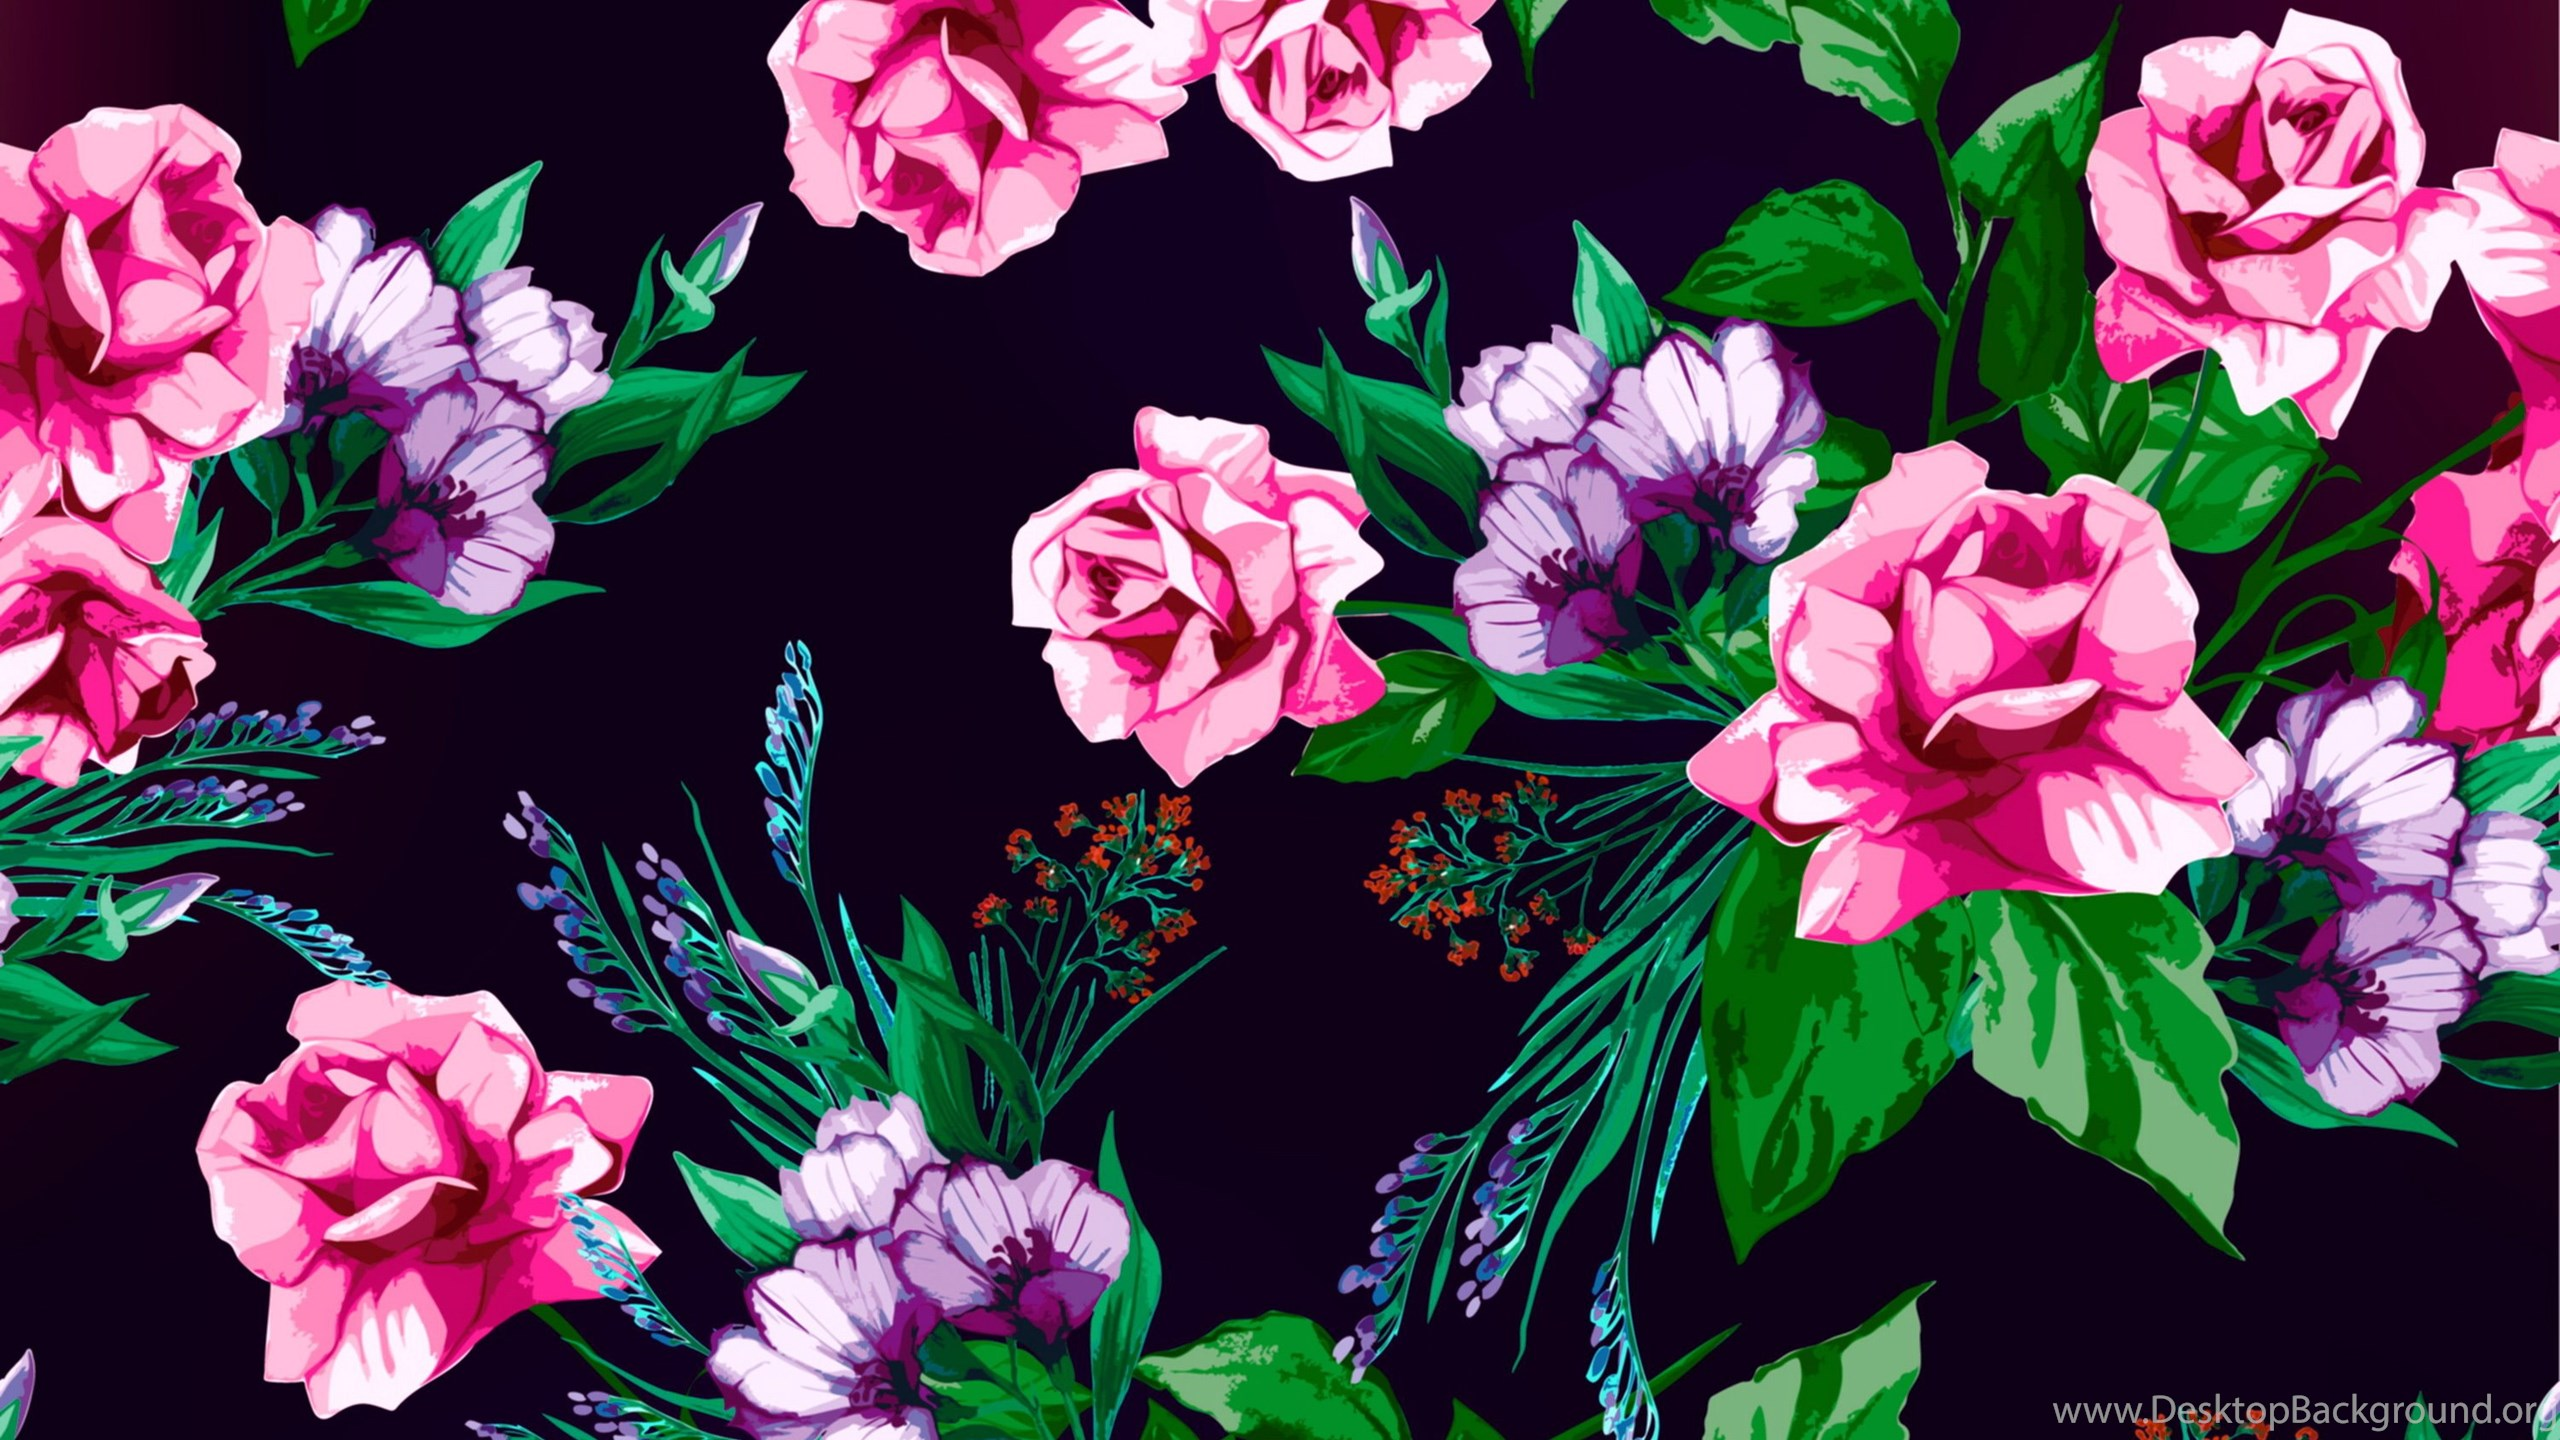 Floral Desktop Background